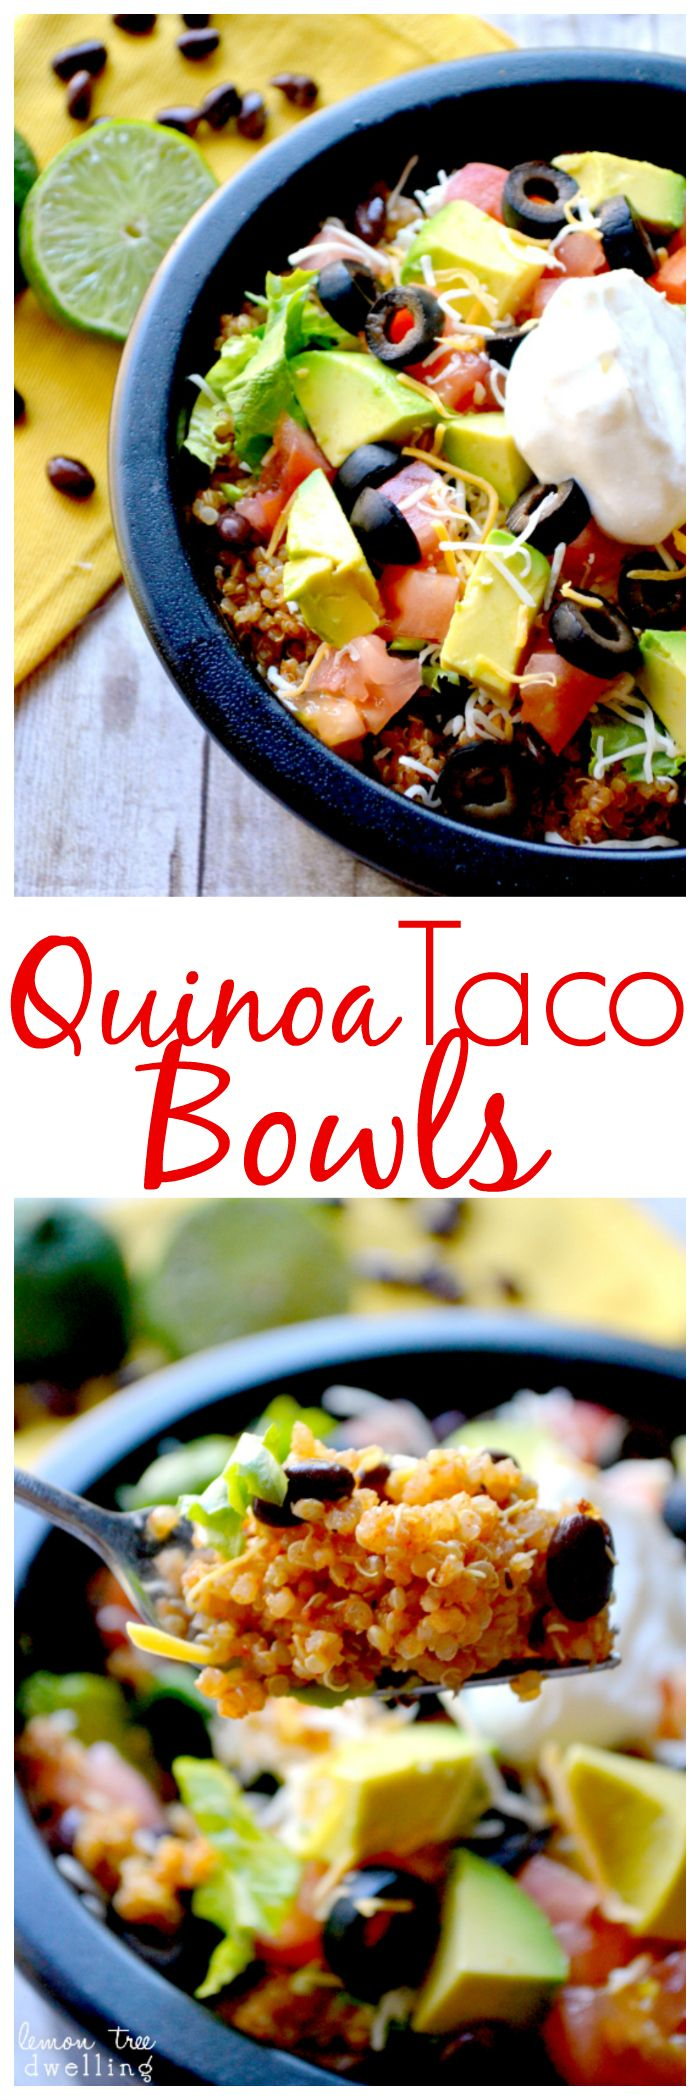 Quinoa Taco Bowls Recipe // #healthy #mexican #food